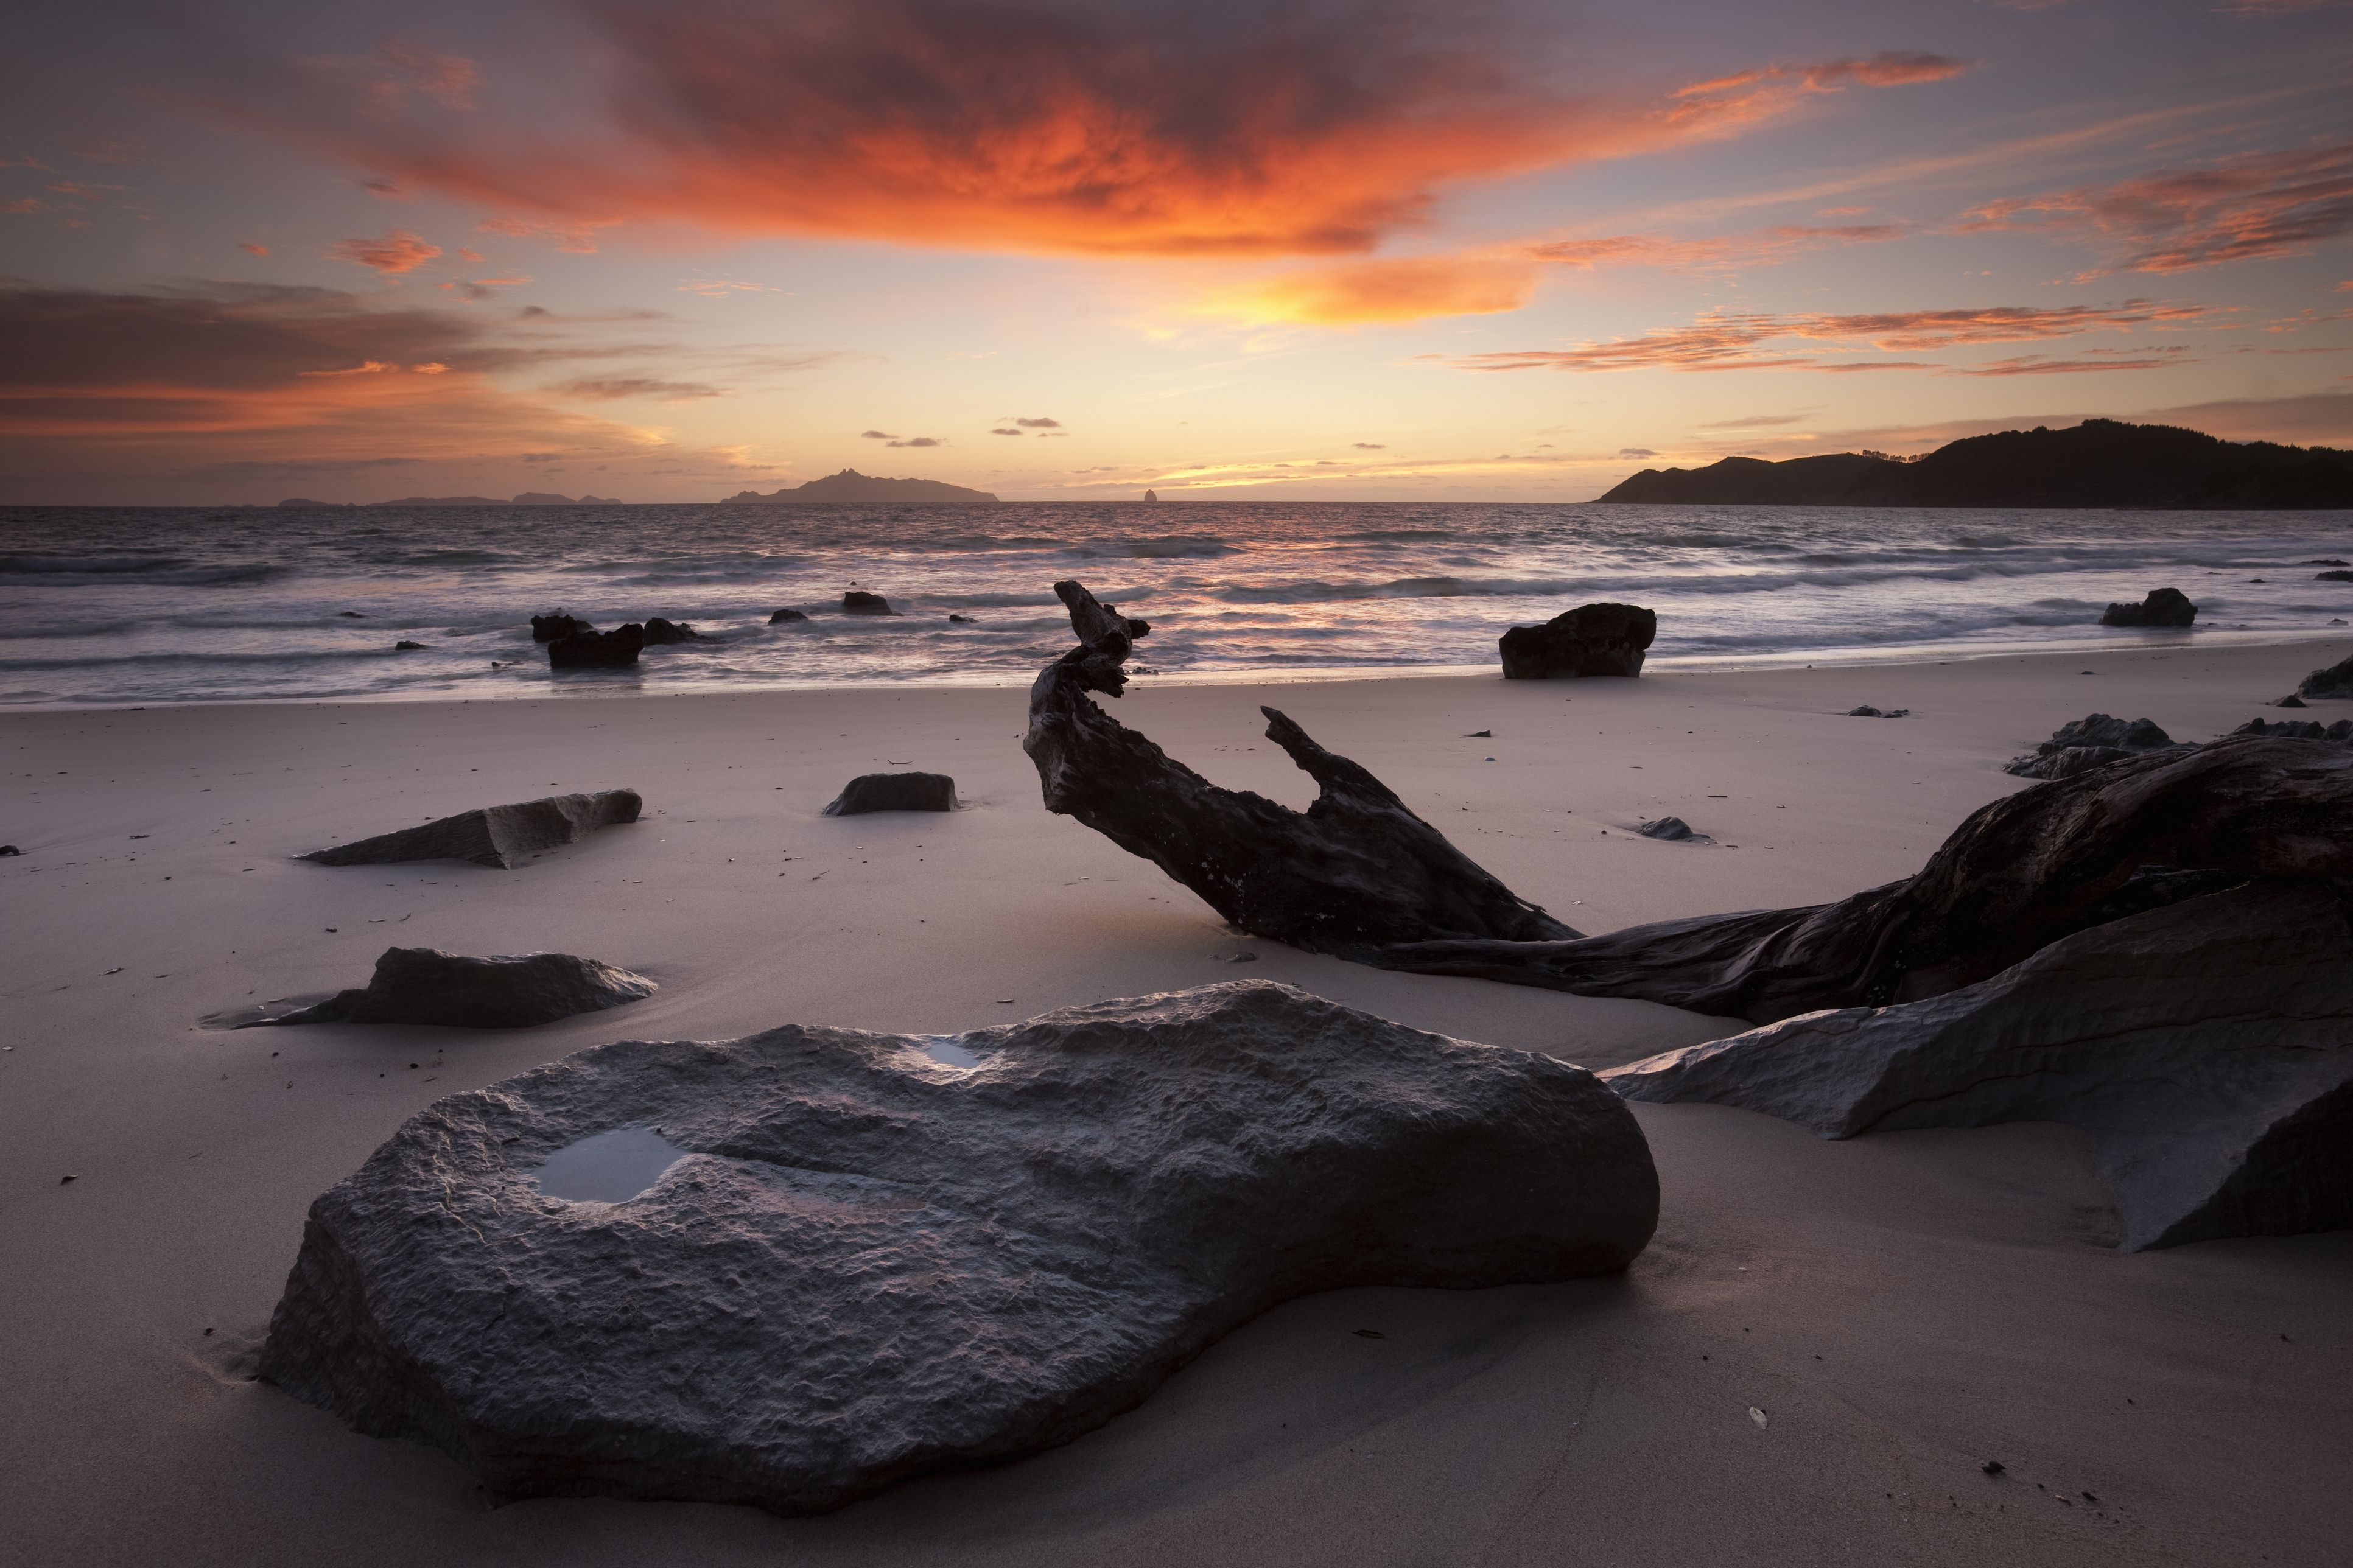 MY 5 FAVORITE BEACHES IN NORTHLAND, NEW ZEALAND